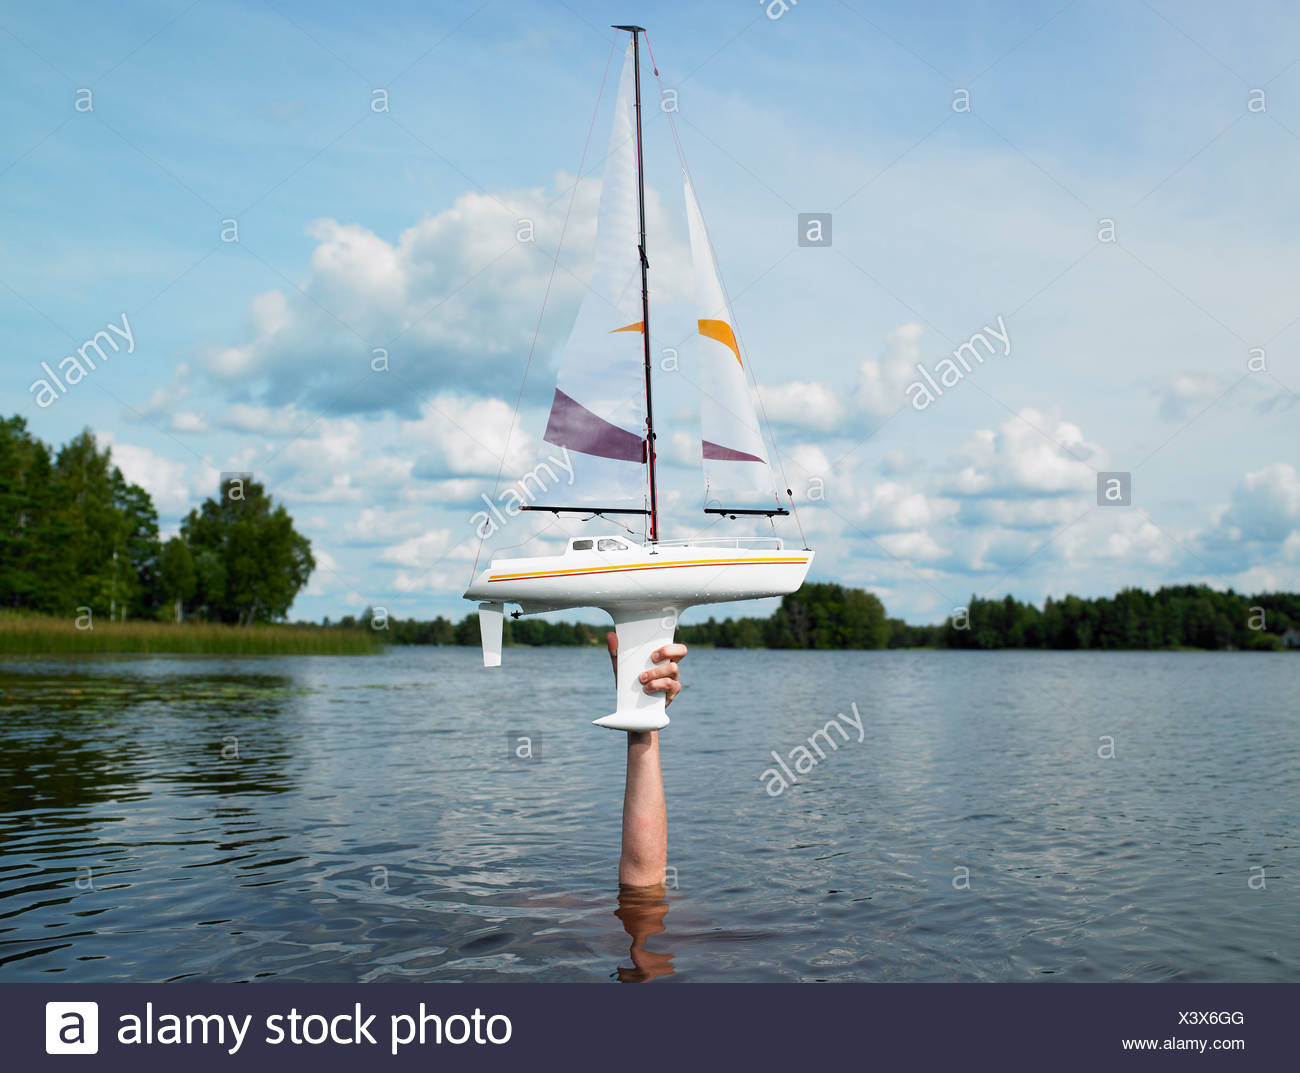 Remote-controlled boat above the water - Stock Image